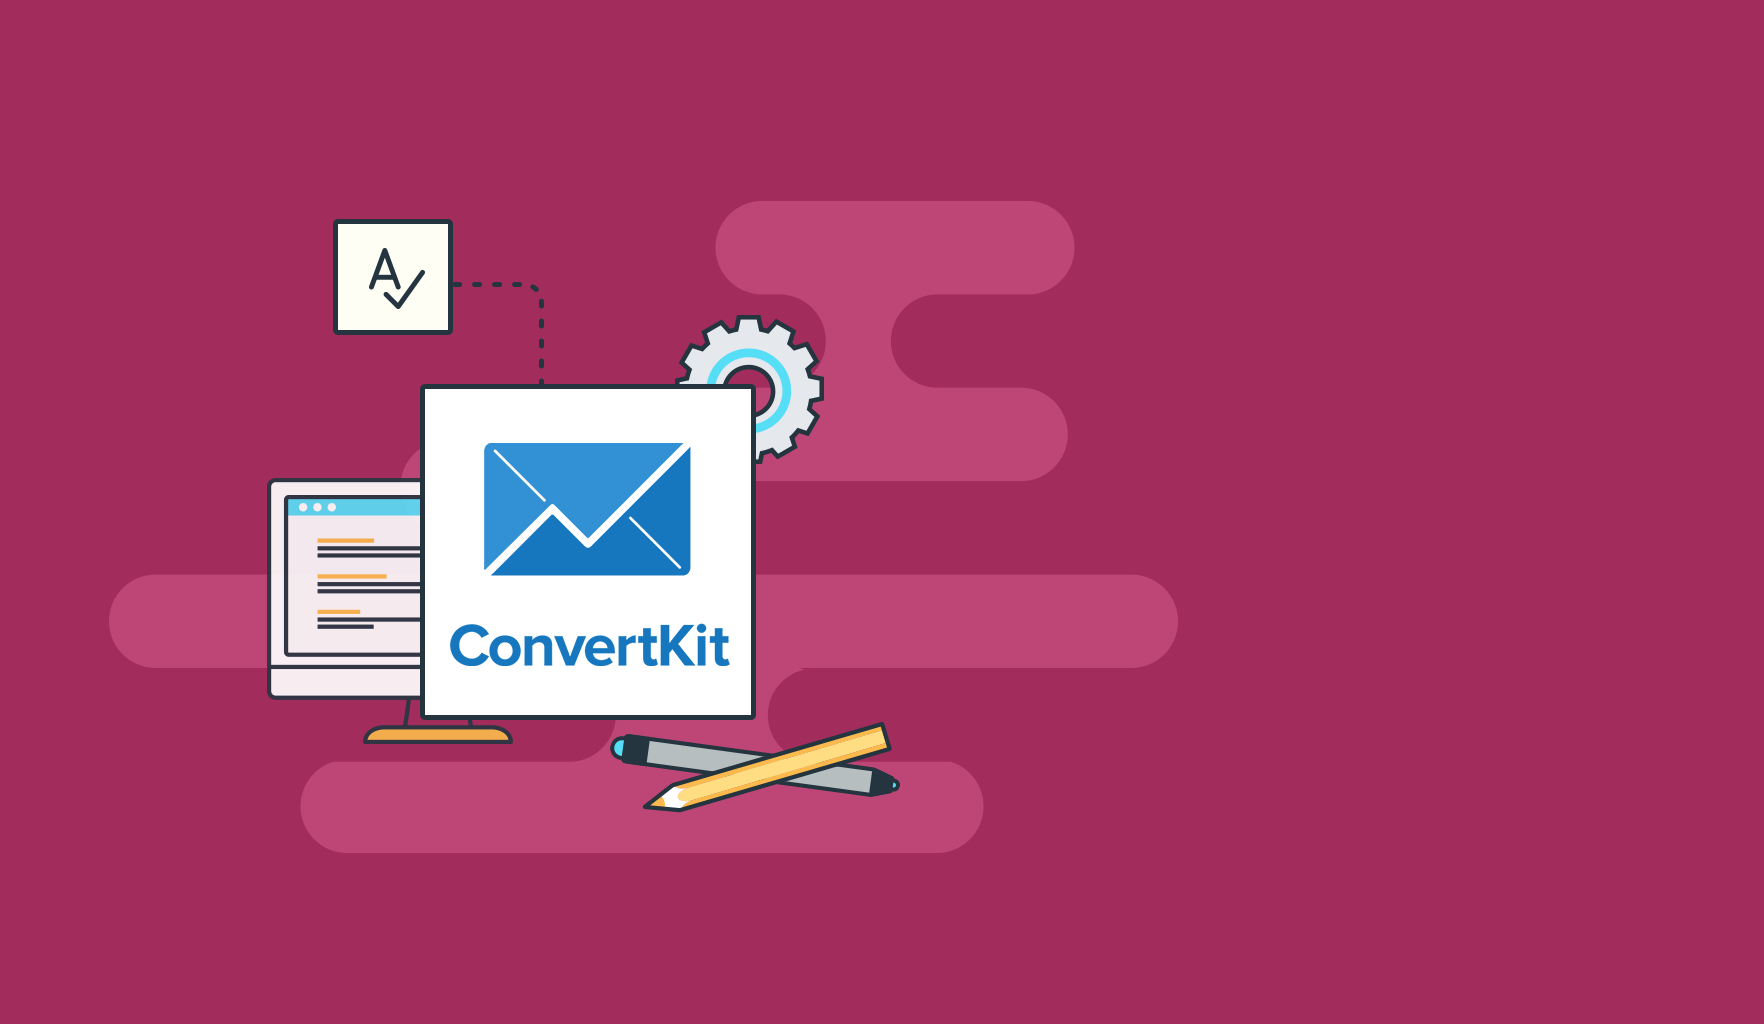 Coupon Printable 2020 For Convertkit Email Marketing